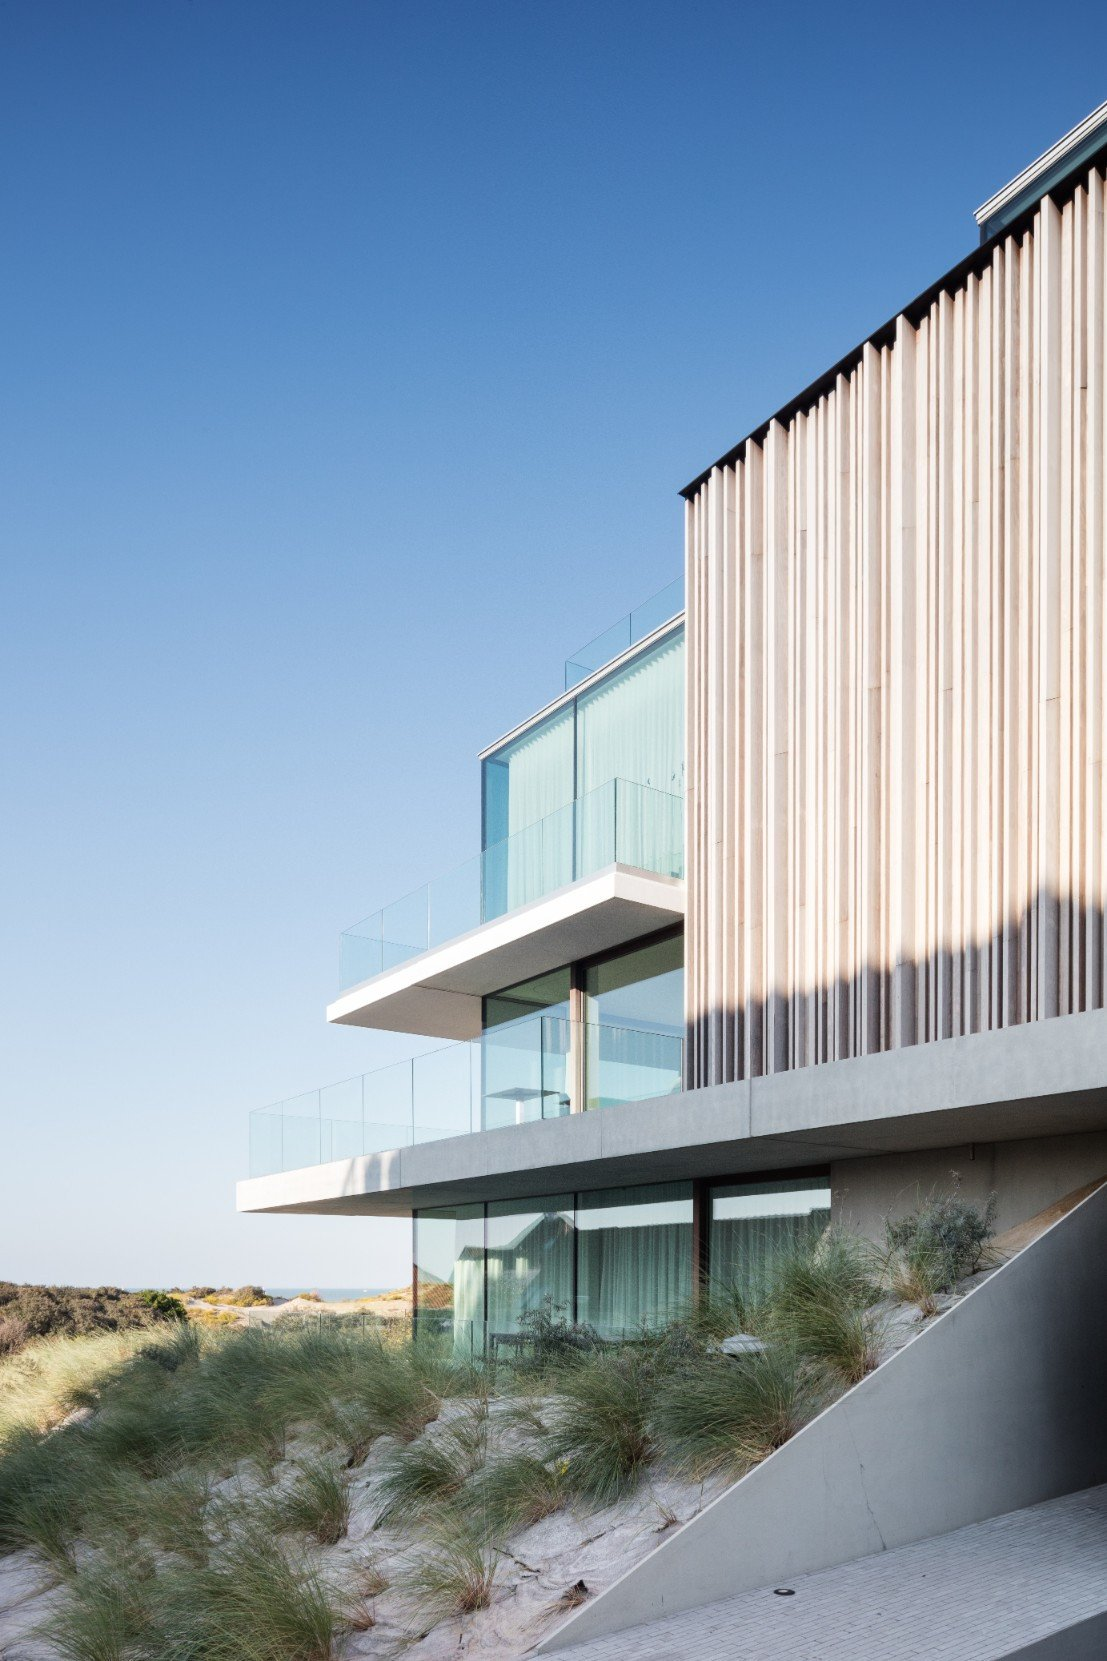 Rietveldprojects-Residence-ON-appartement-design-architectuur-kust-tvdv7